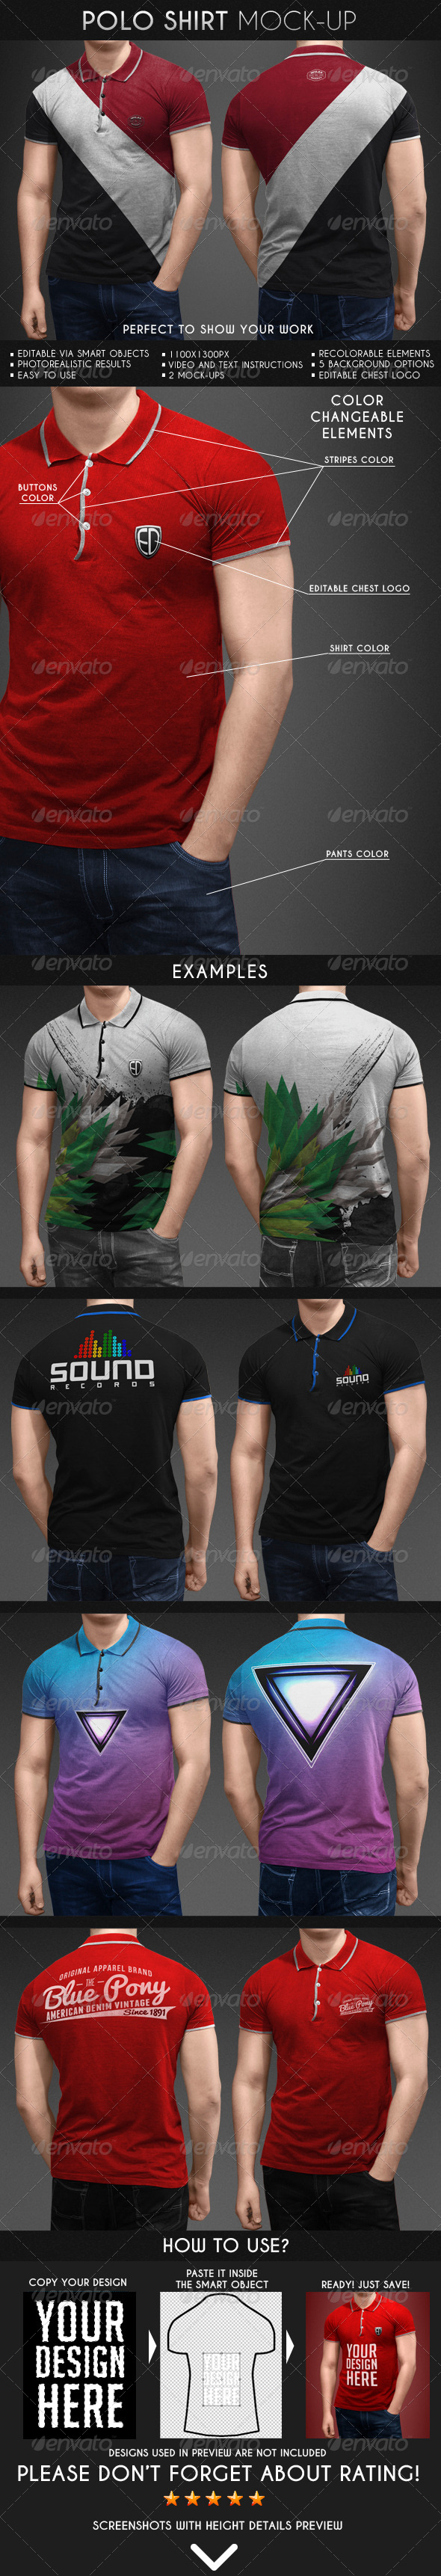 GraphicRiver Polo Shirt Mock-Up 6913975